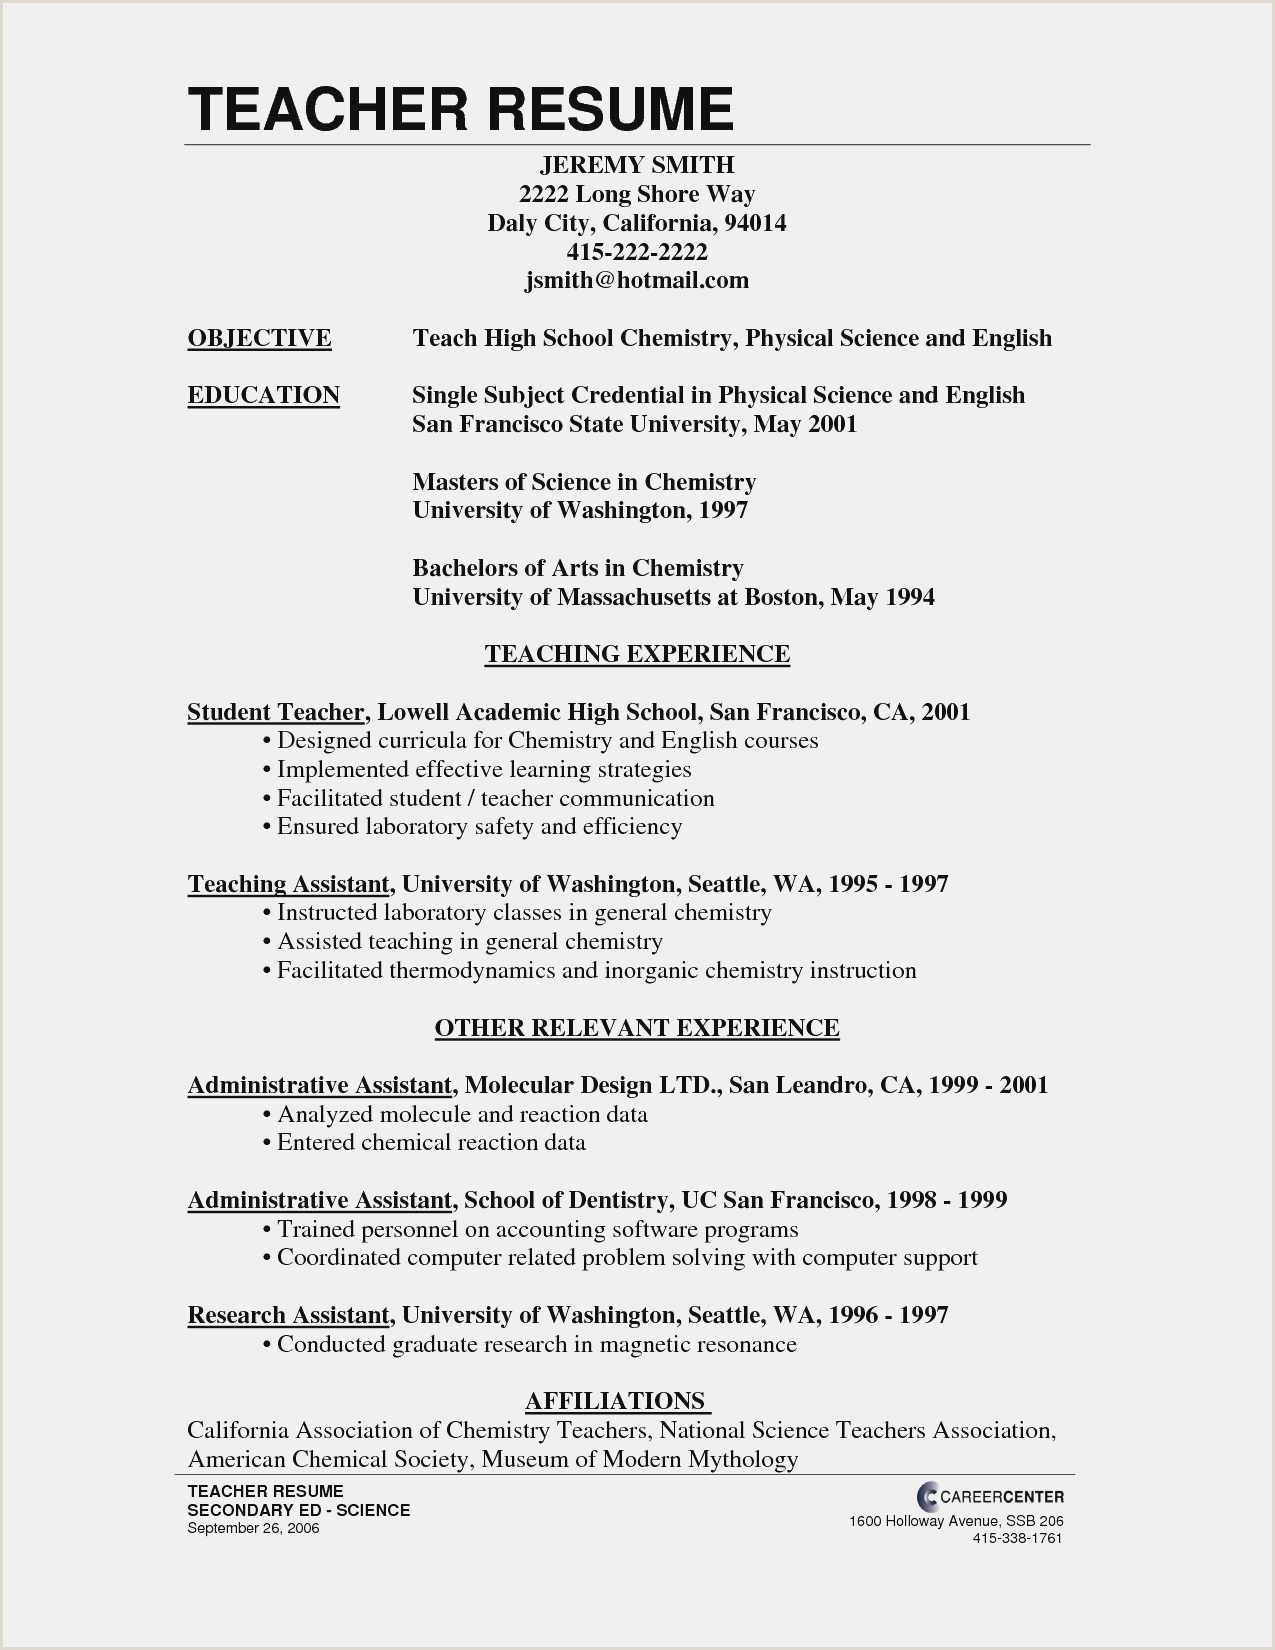 Free Download 54 Microsoft Word Resume Templates New